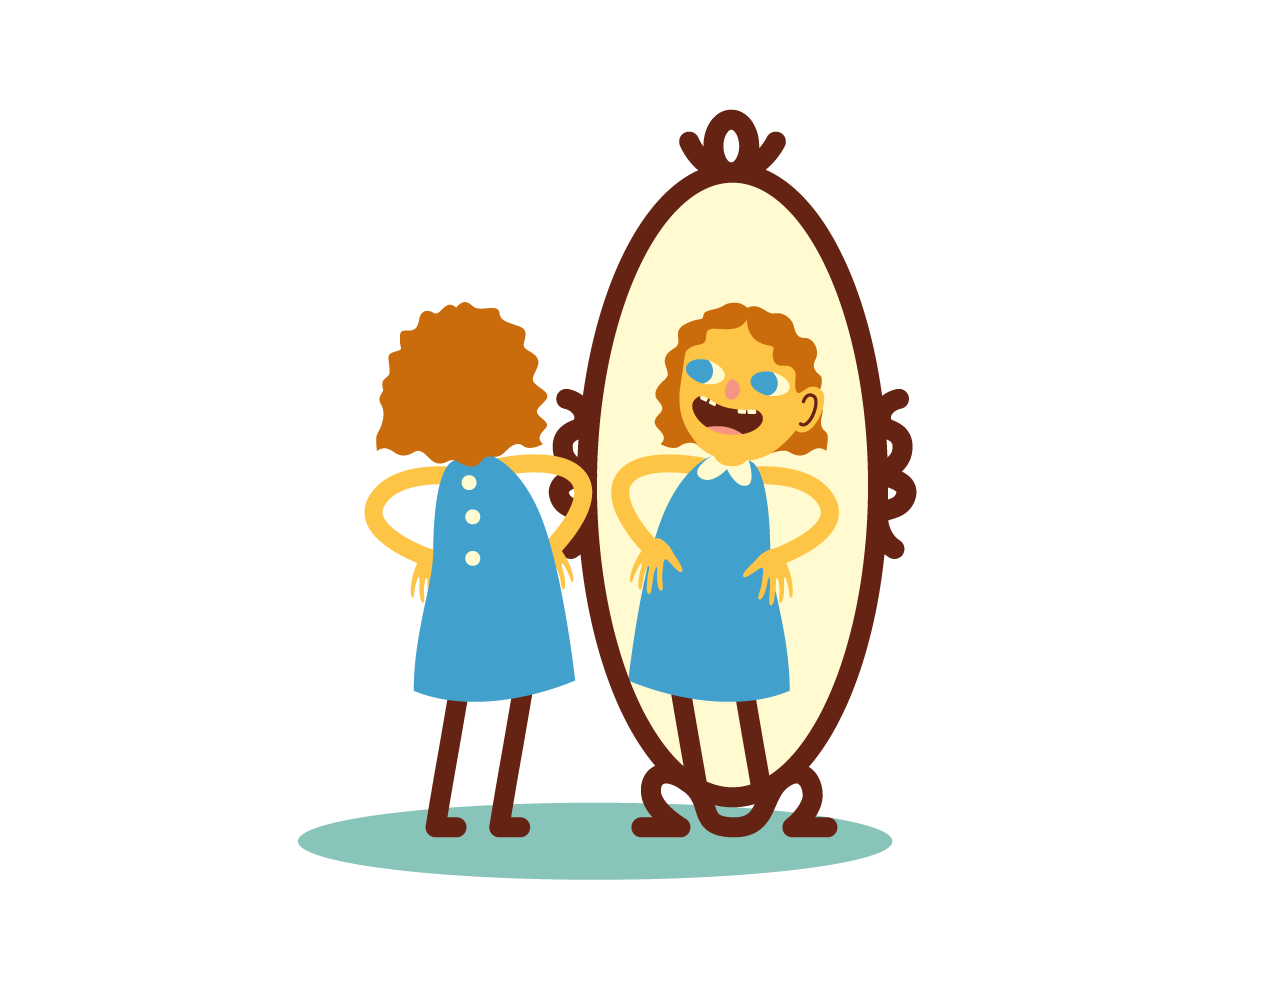 A child is looking in the mirror with admiration.